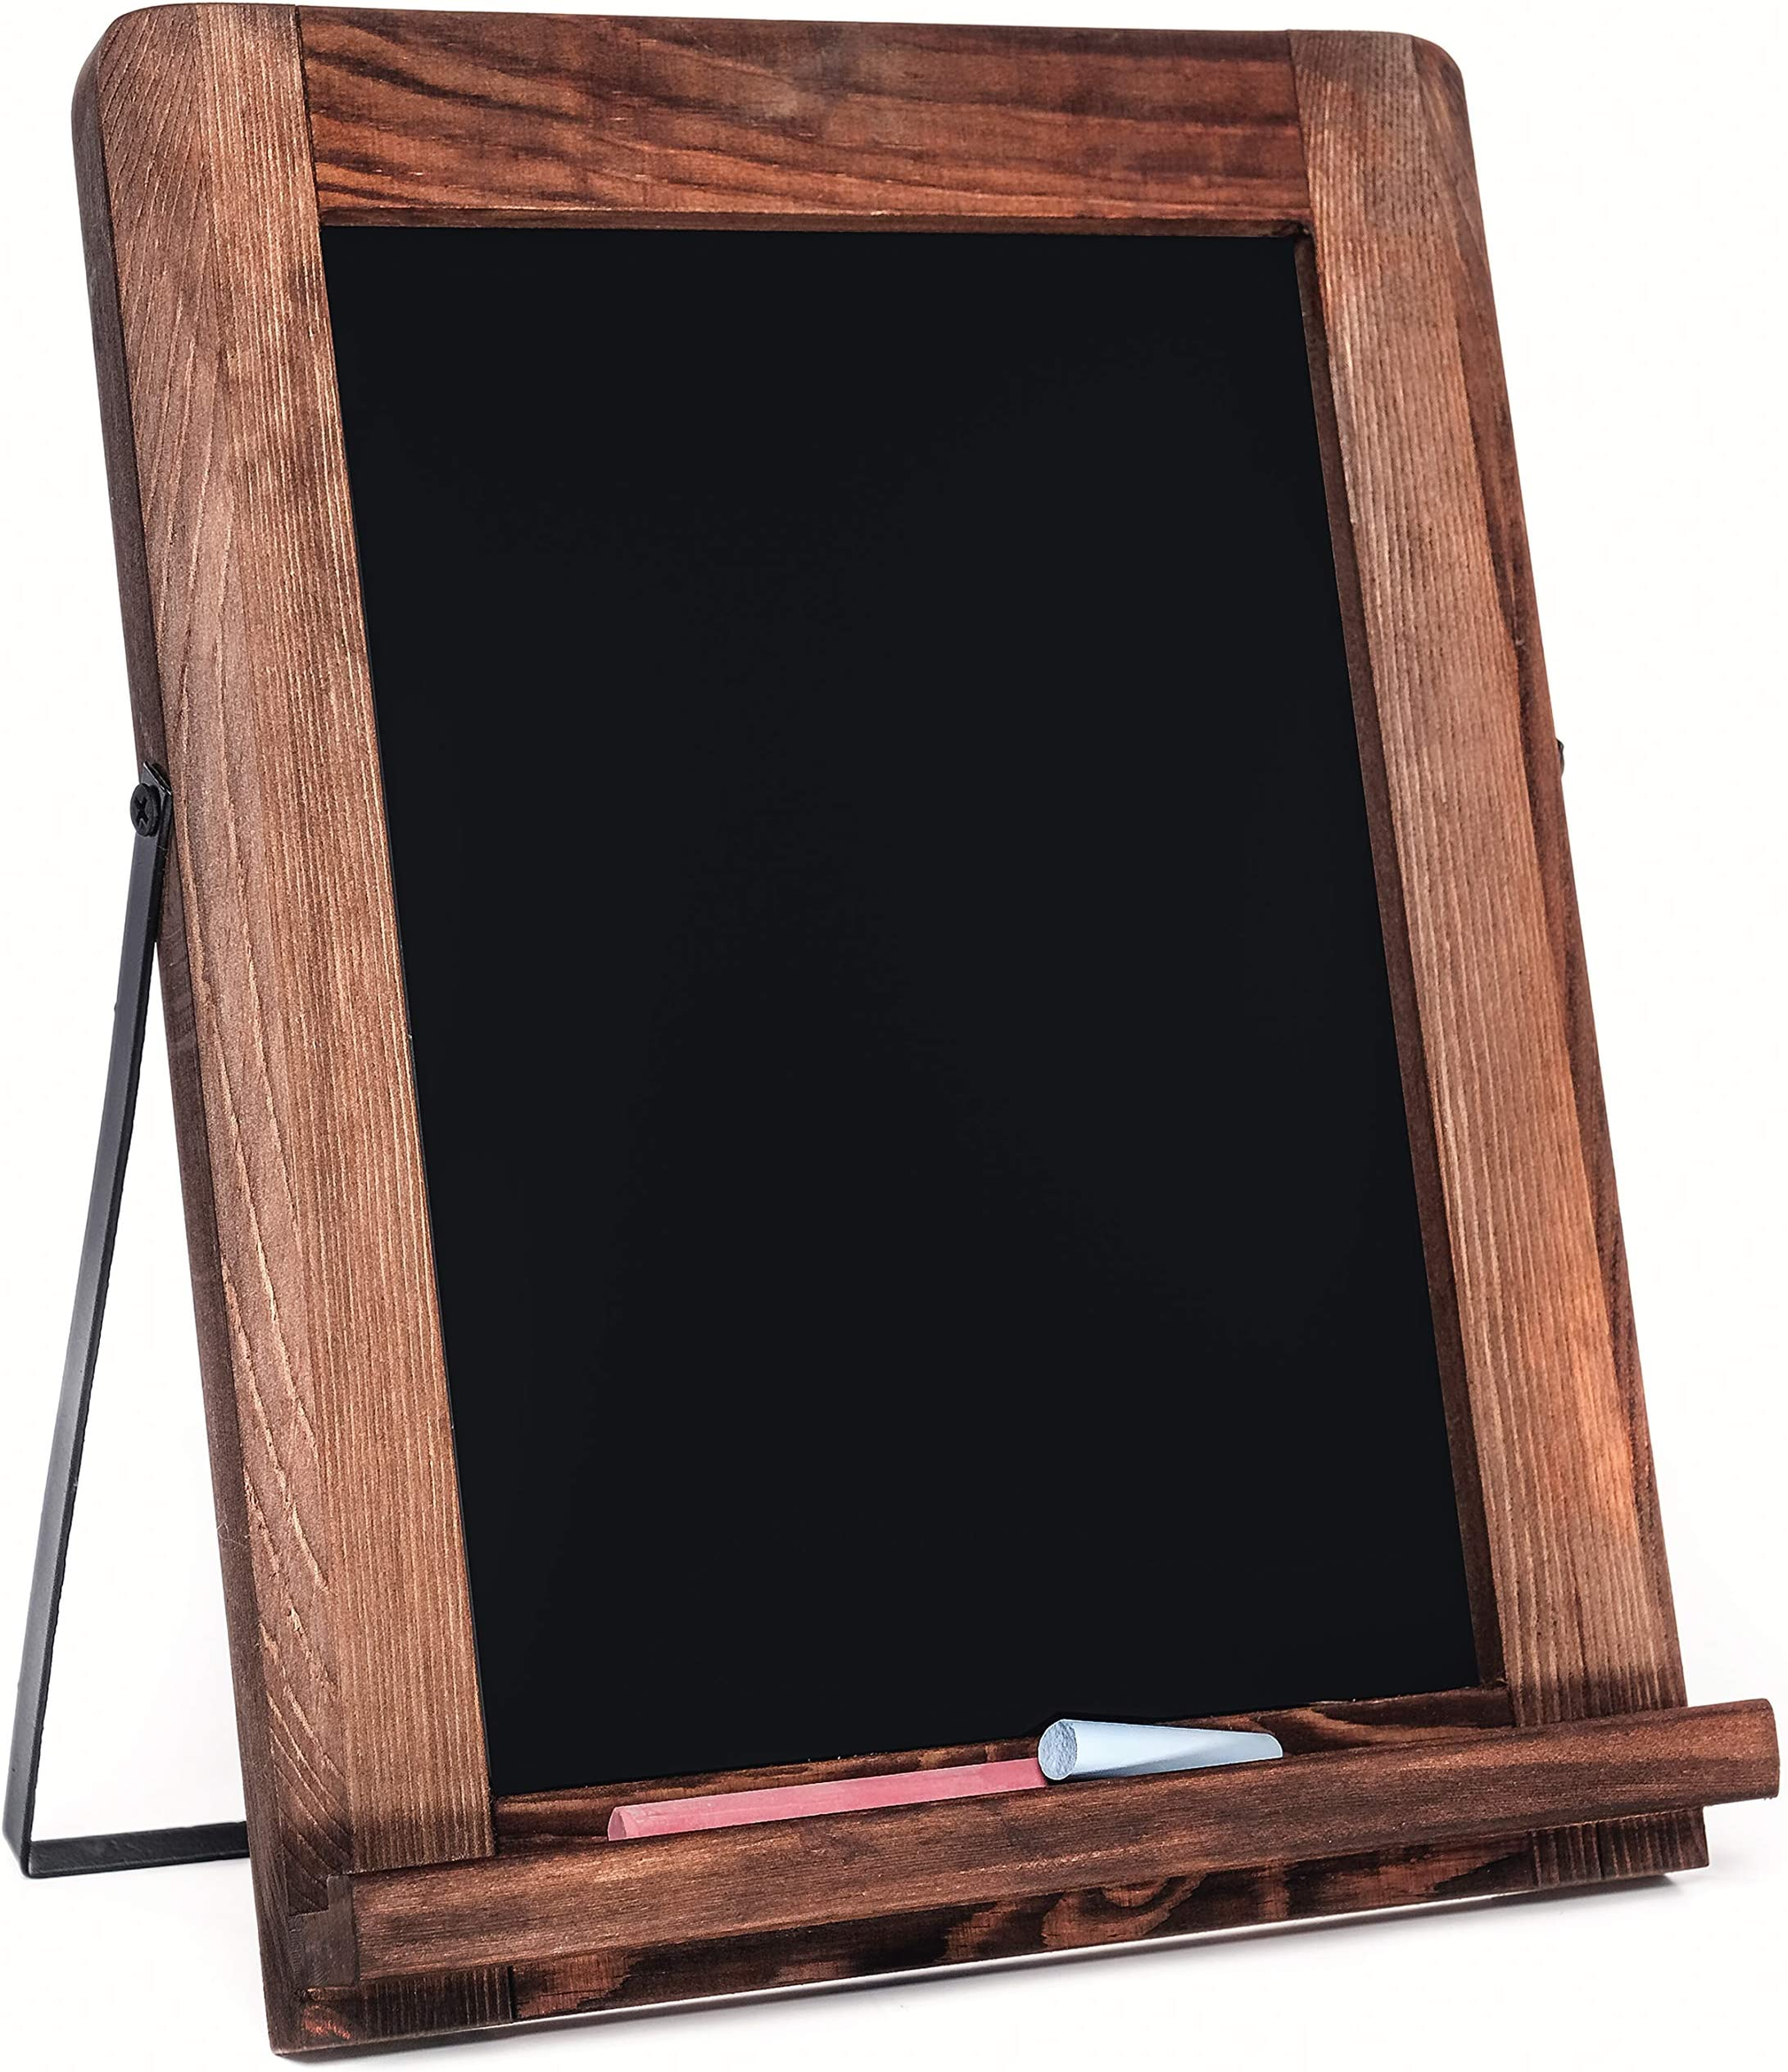 Amazon Com Chalkboard Magnetic Non Porous Framed Vintage Decor Standing Chalk Board For Wedding Kitchen Bar Restaurant Menu Tabletop And Home Sign 10 X 12 5 Inches Blackboard Office Products